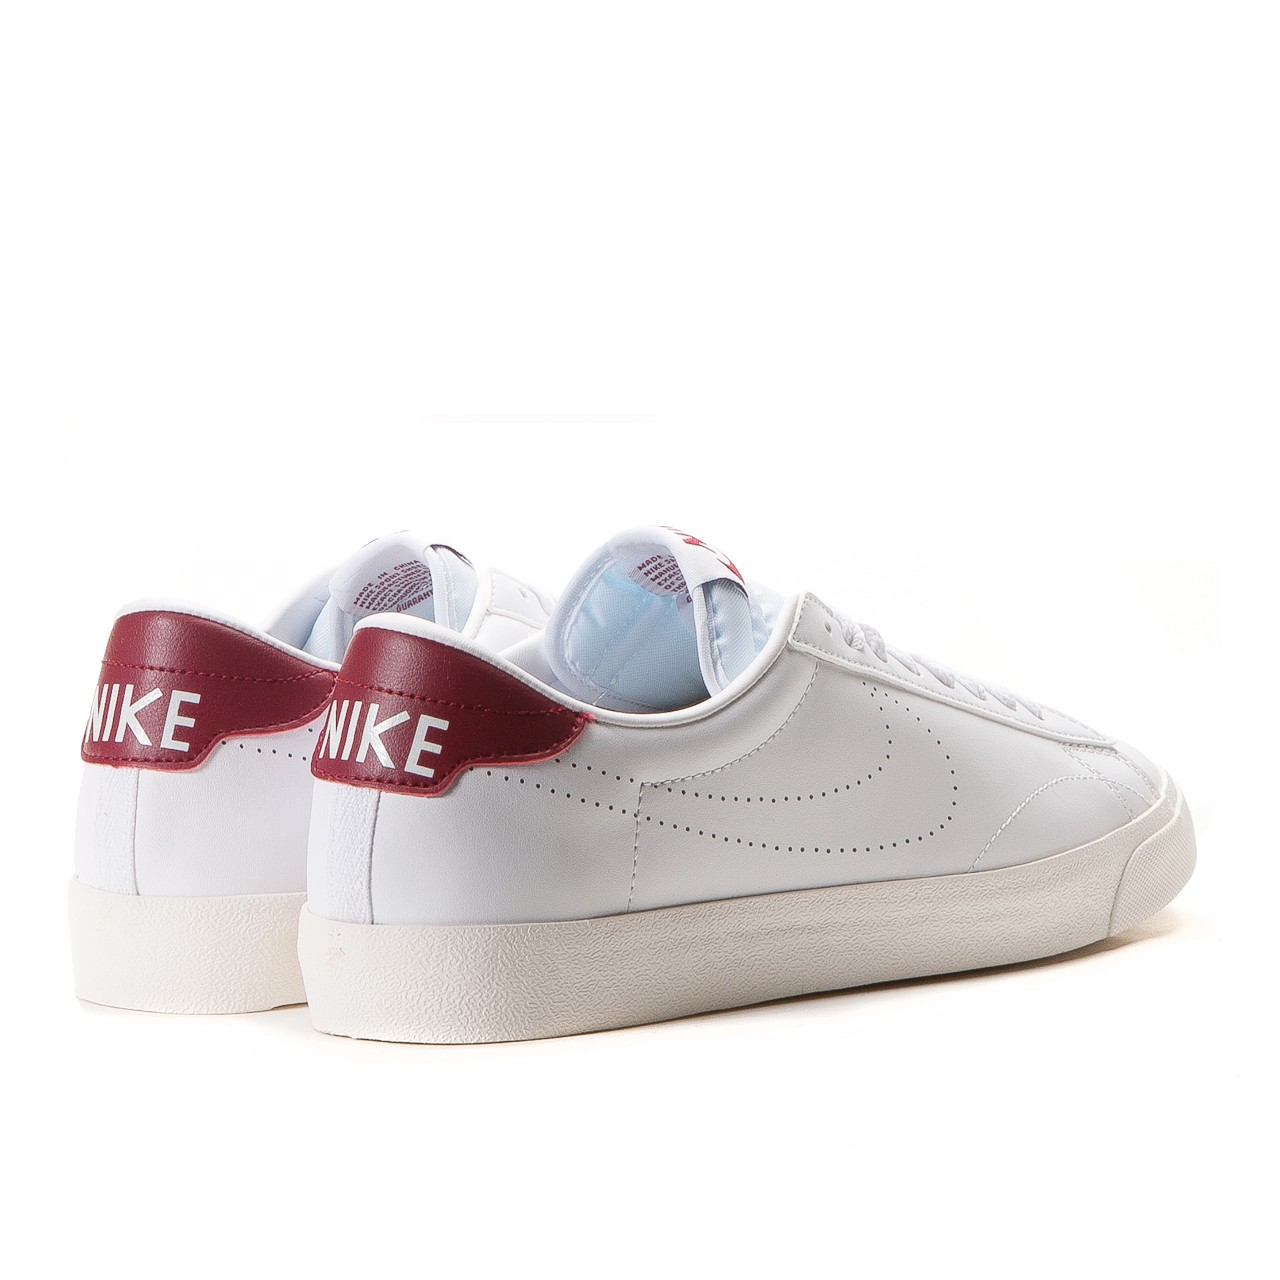 watch d2c69 8d60d The Nike Tennis Classic AC retails at 89,90 € (approx. RM438) and is  available via Allike.